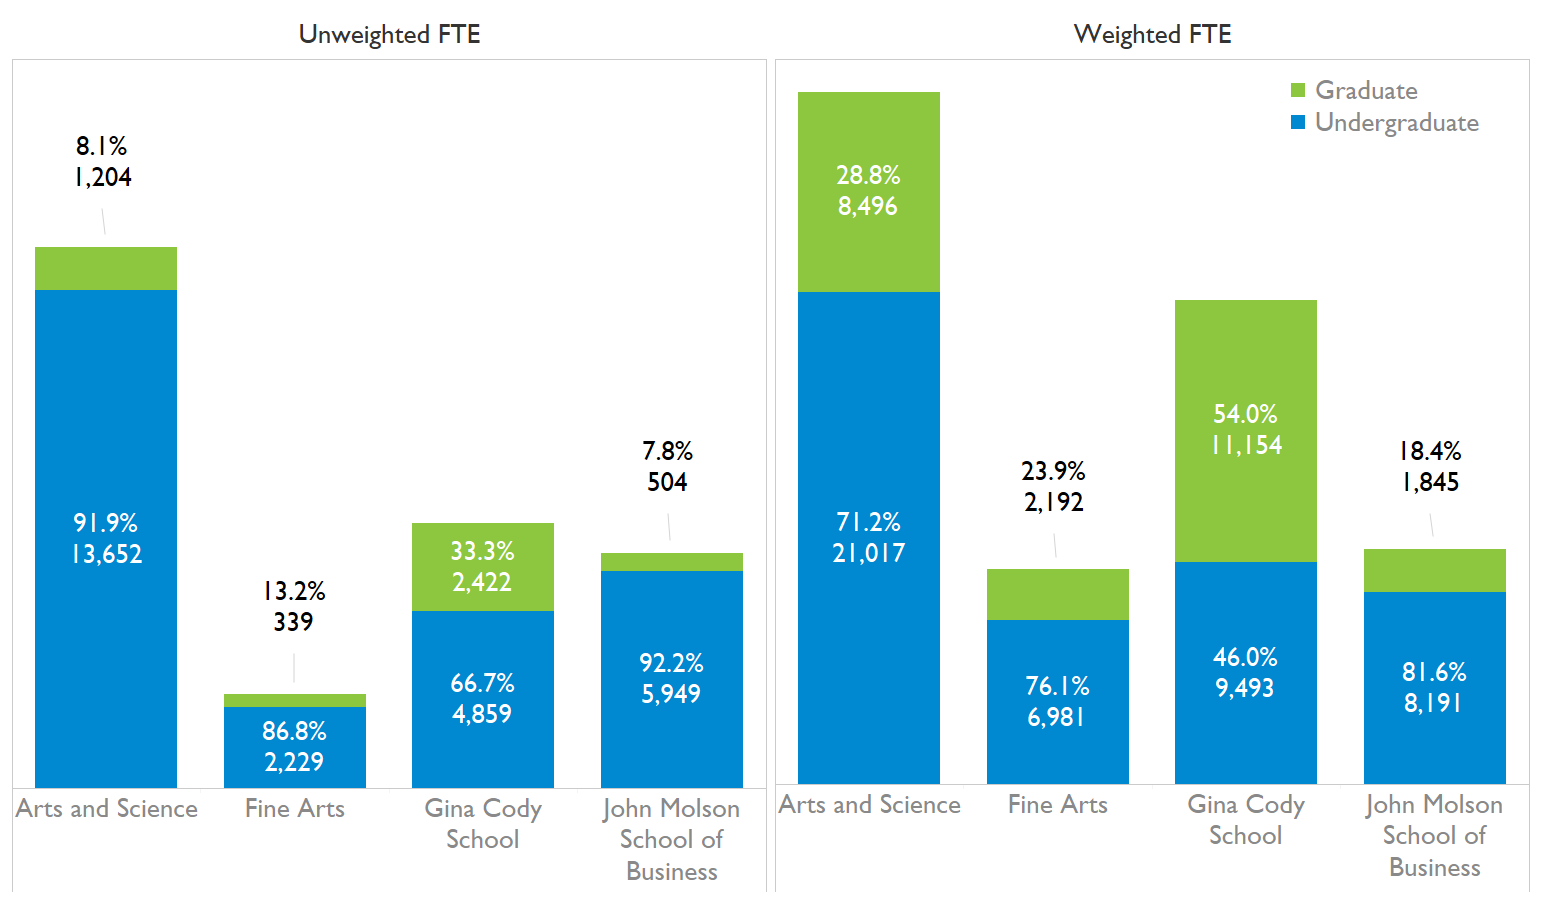 Course-Based Unweighted and Weighted Full-time Equivalent (FTE) Student Enrolment